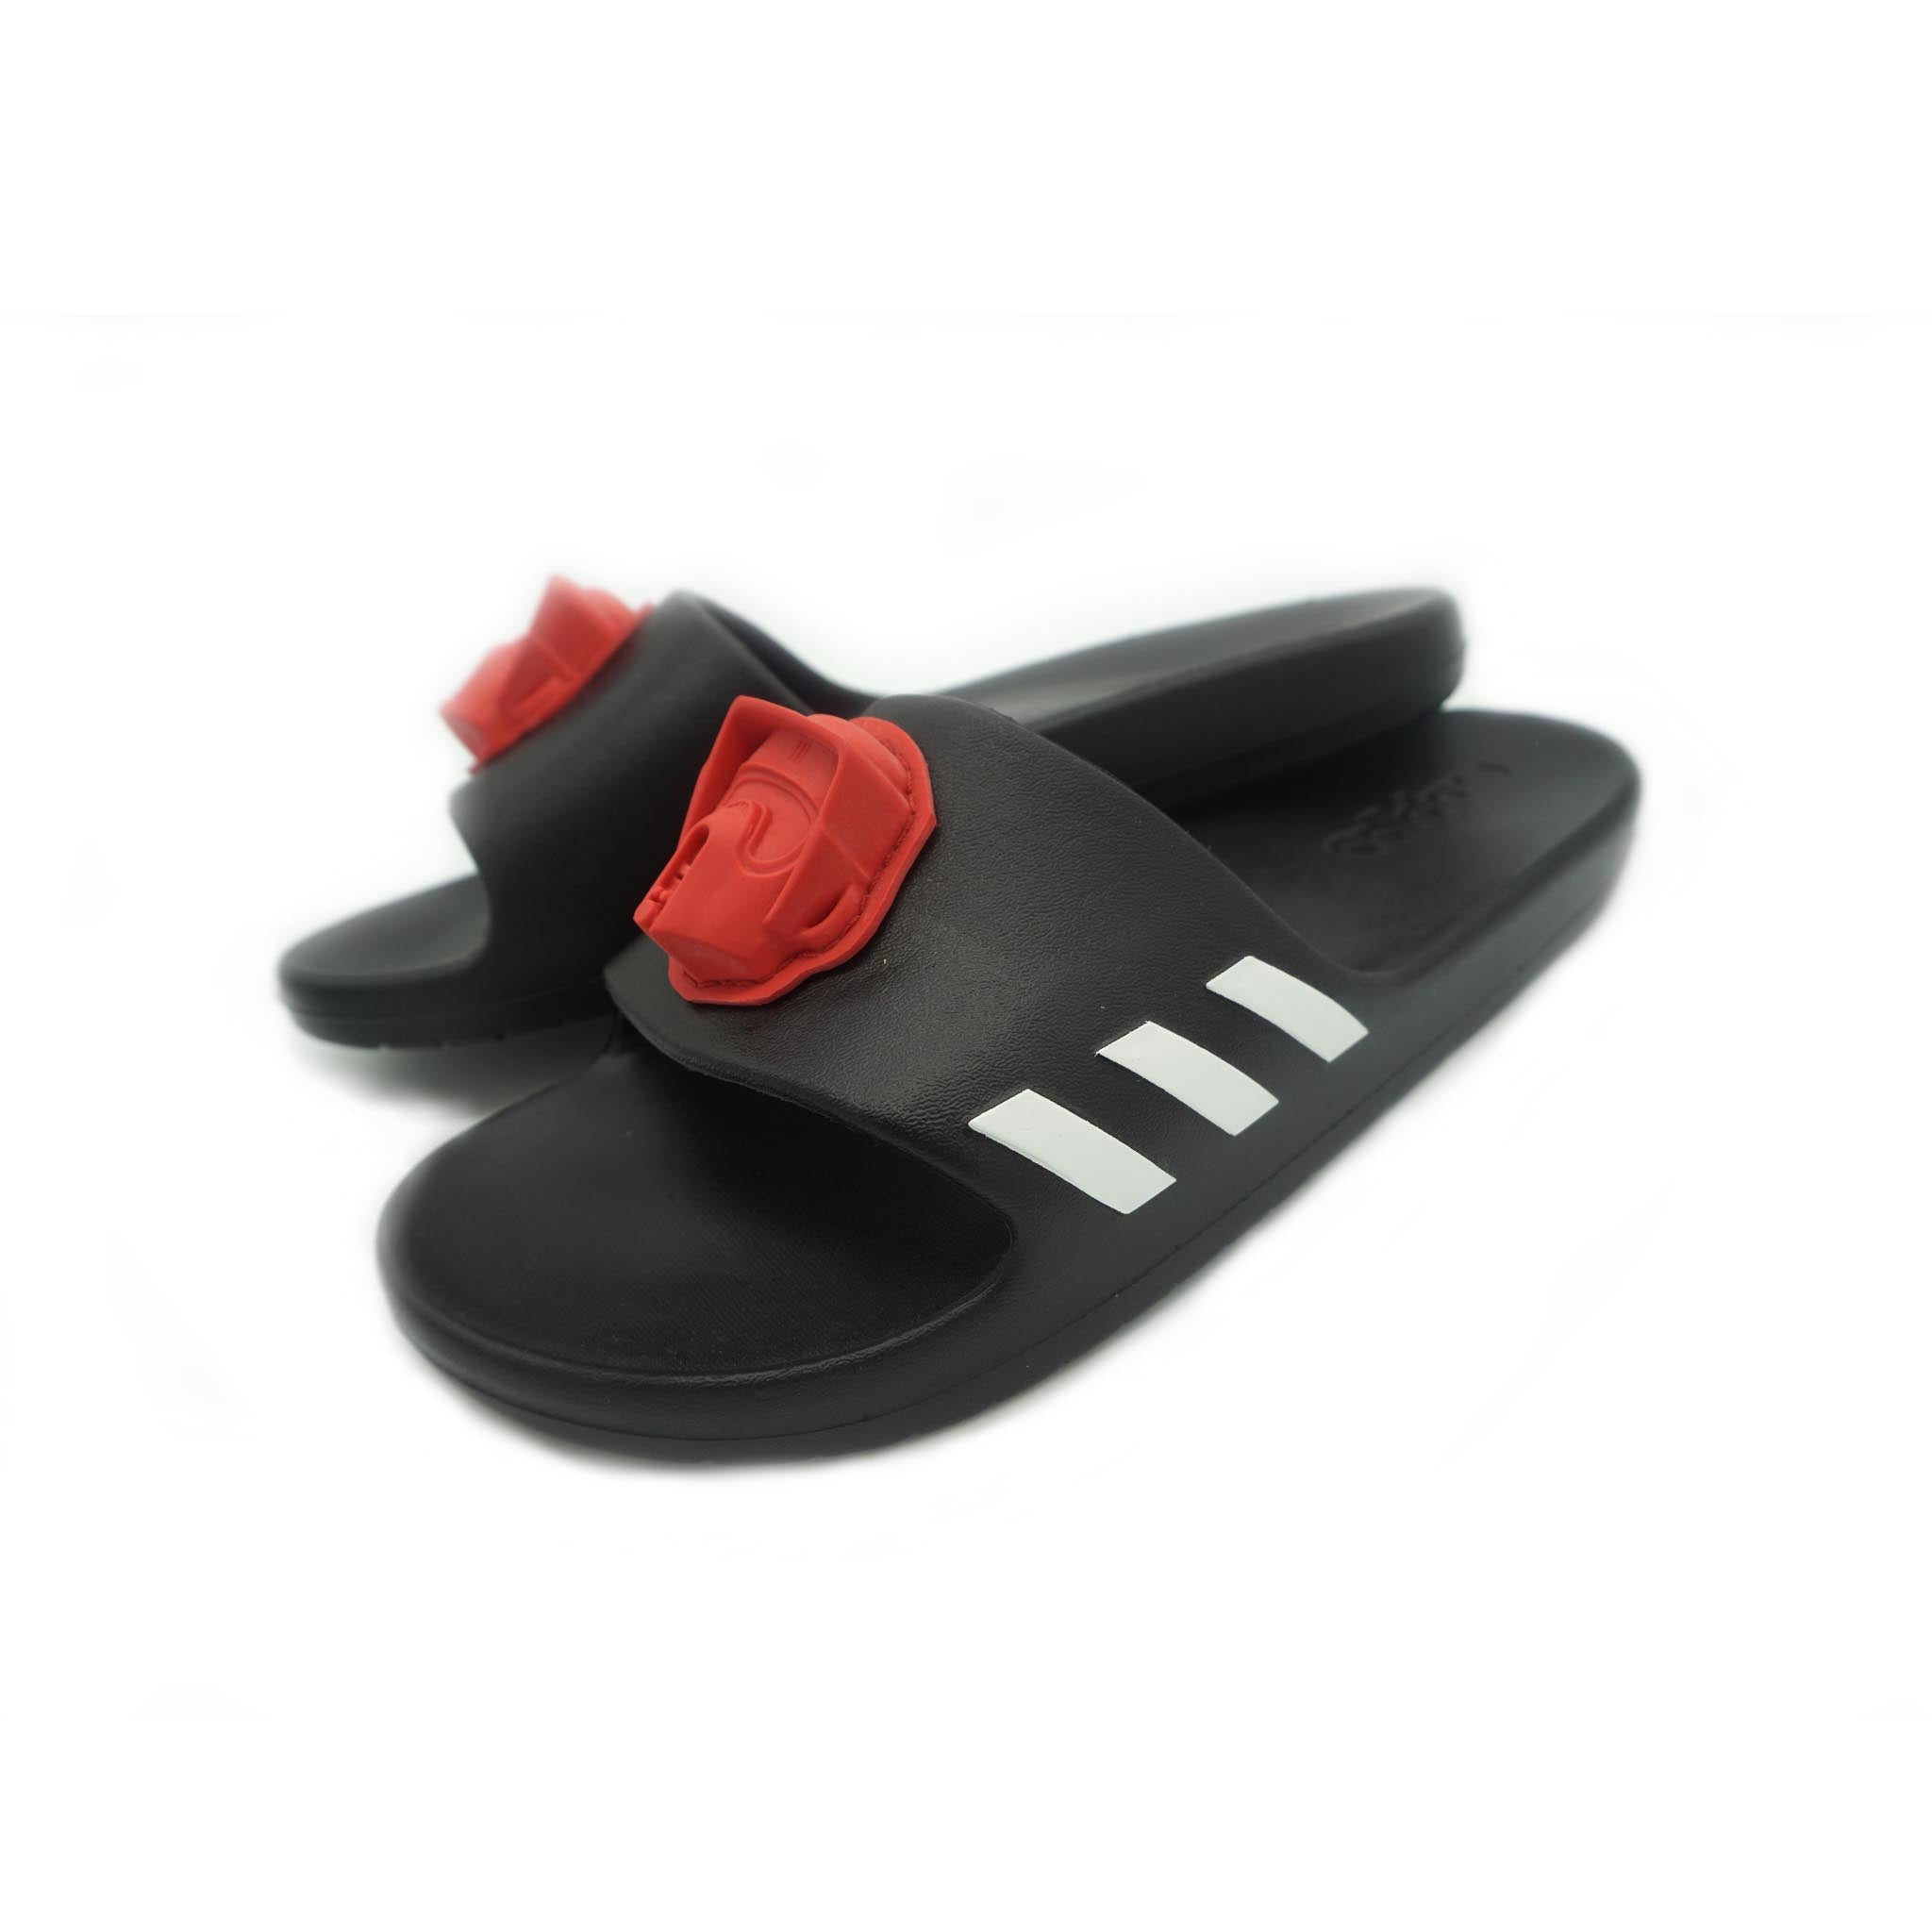 Adidas Pool Slides: REWORKED Rider On The Storm